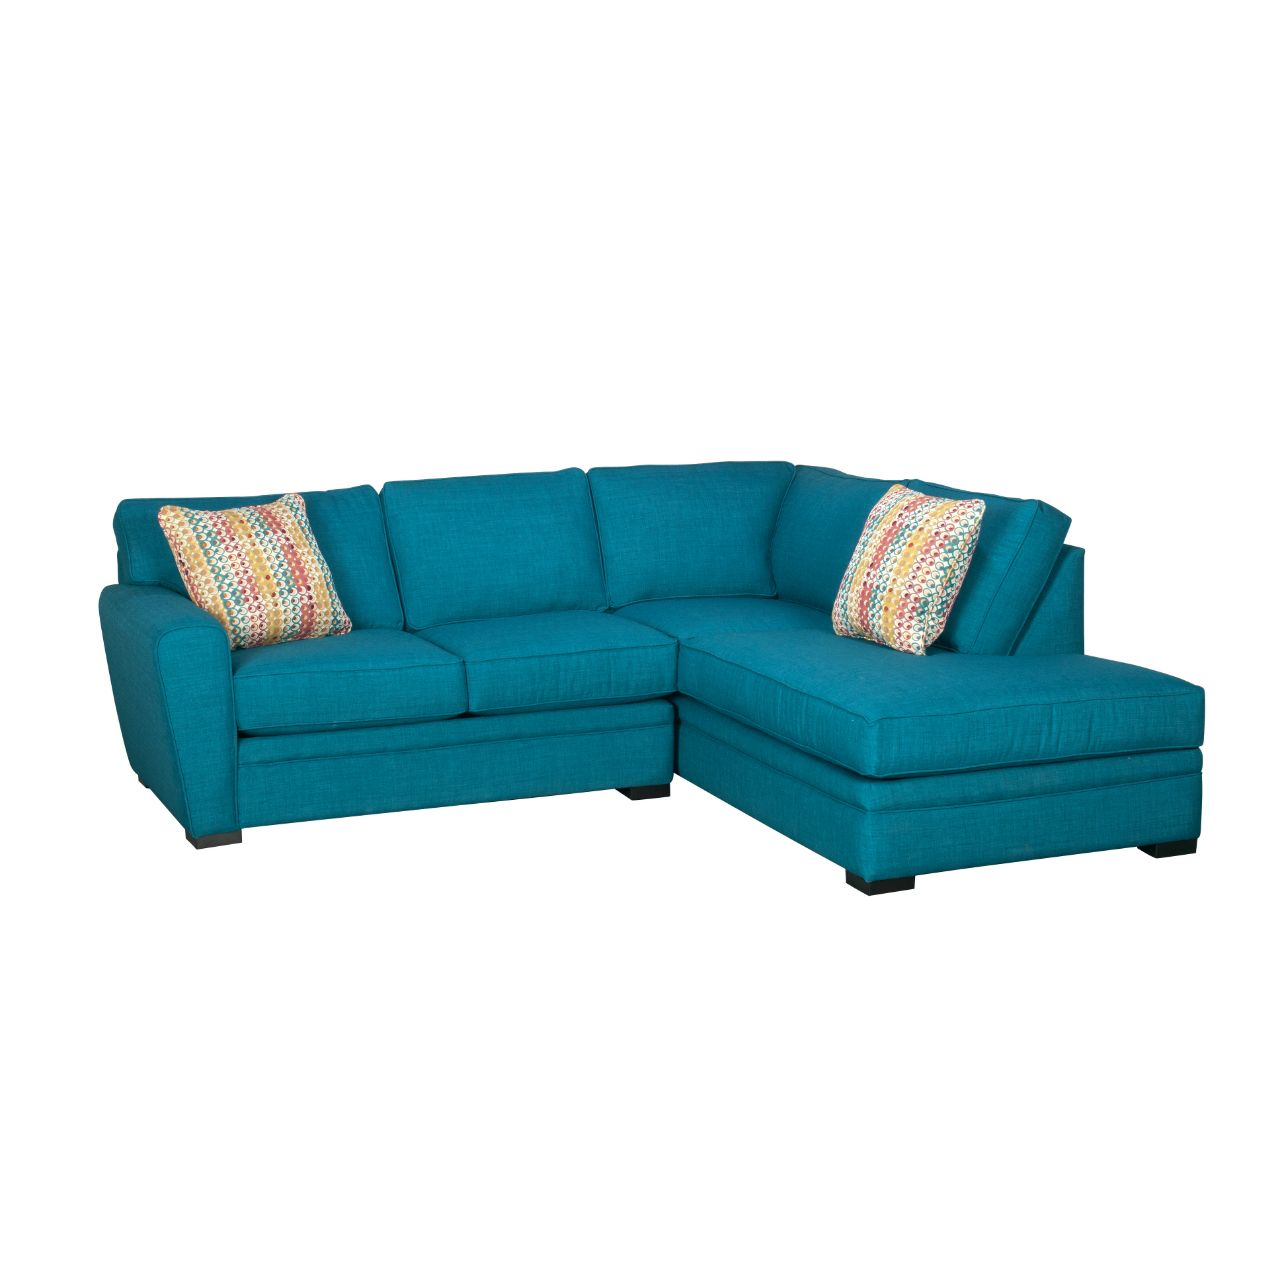 Awesome Artemis Sofa American Home Furniture And Mattress Dailytribune Chair Design For Home Dailytribuneorg